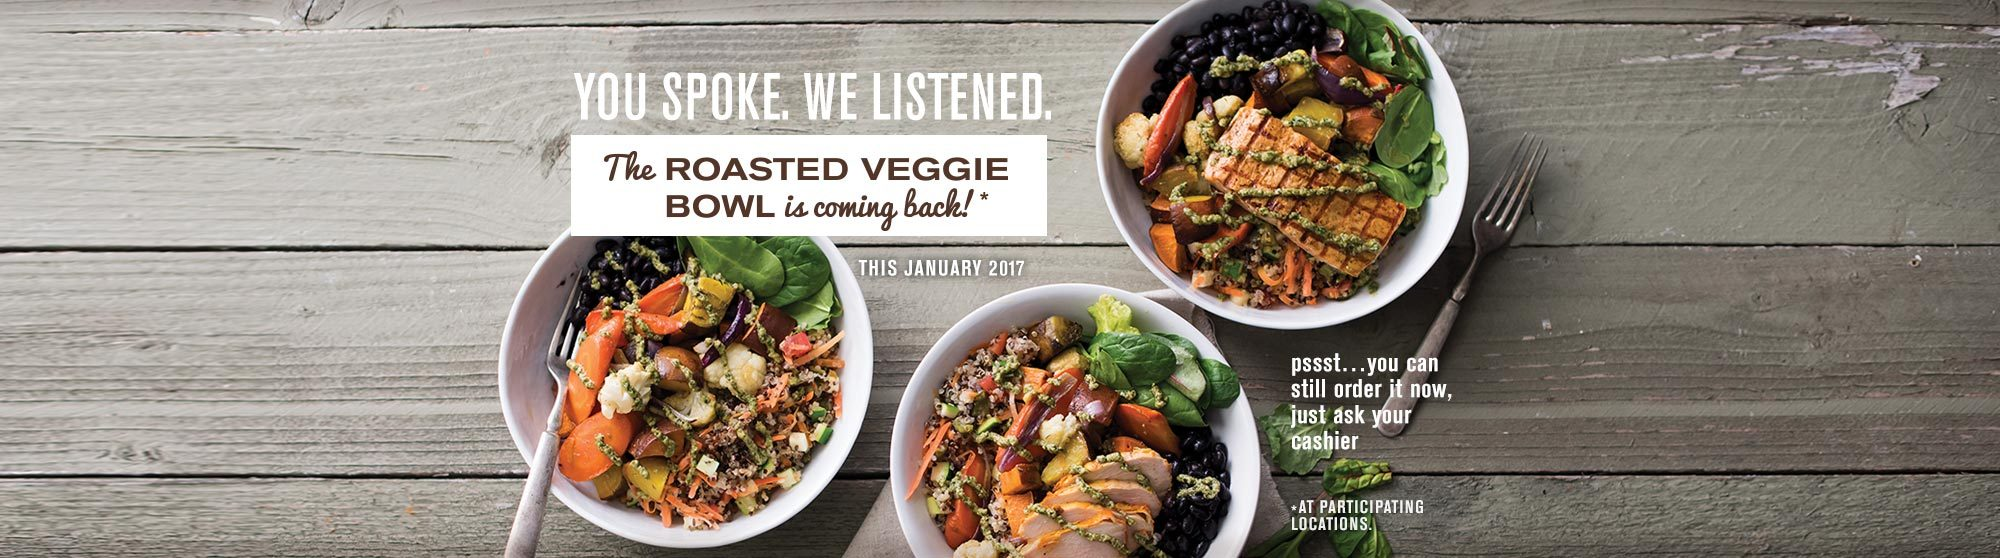 The Roasted Veggie Bowl is Coming Back